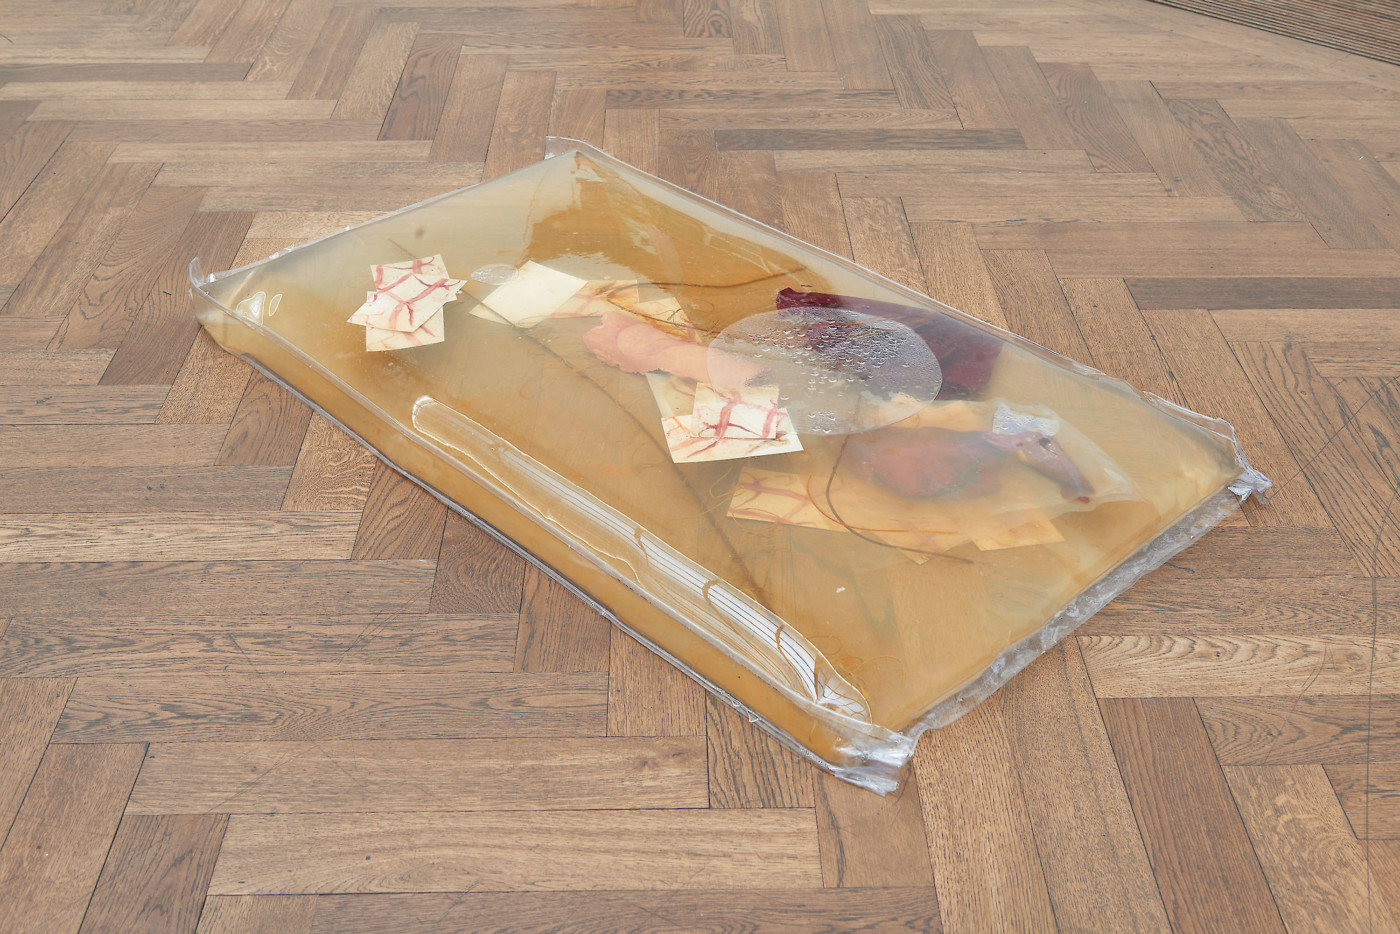 OLGA BALEMA  Become a stranger to yourself , 2017 Fabric, latex, photographs, silicone, soft pvc, steel, water 7,6 × 139,7 × 76,2 cm / 3 x 55 x 30 in - High Art Gallery Paris